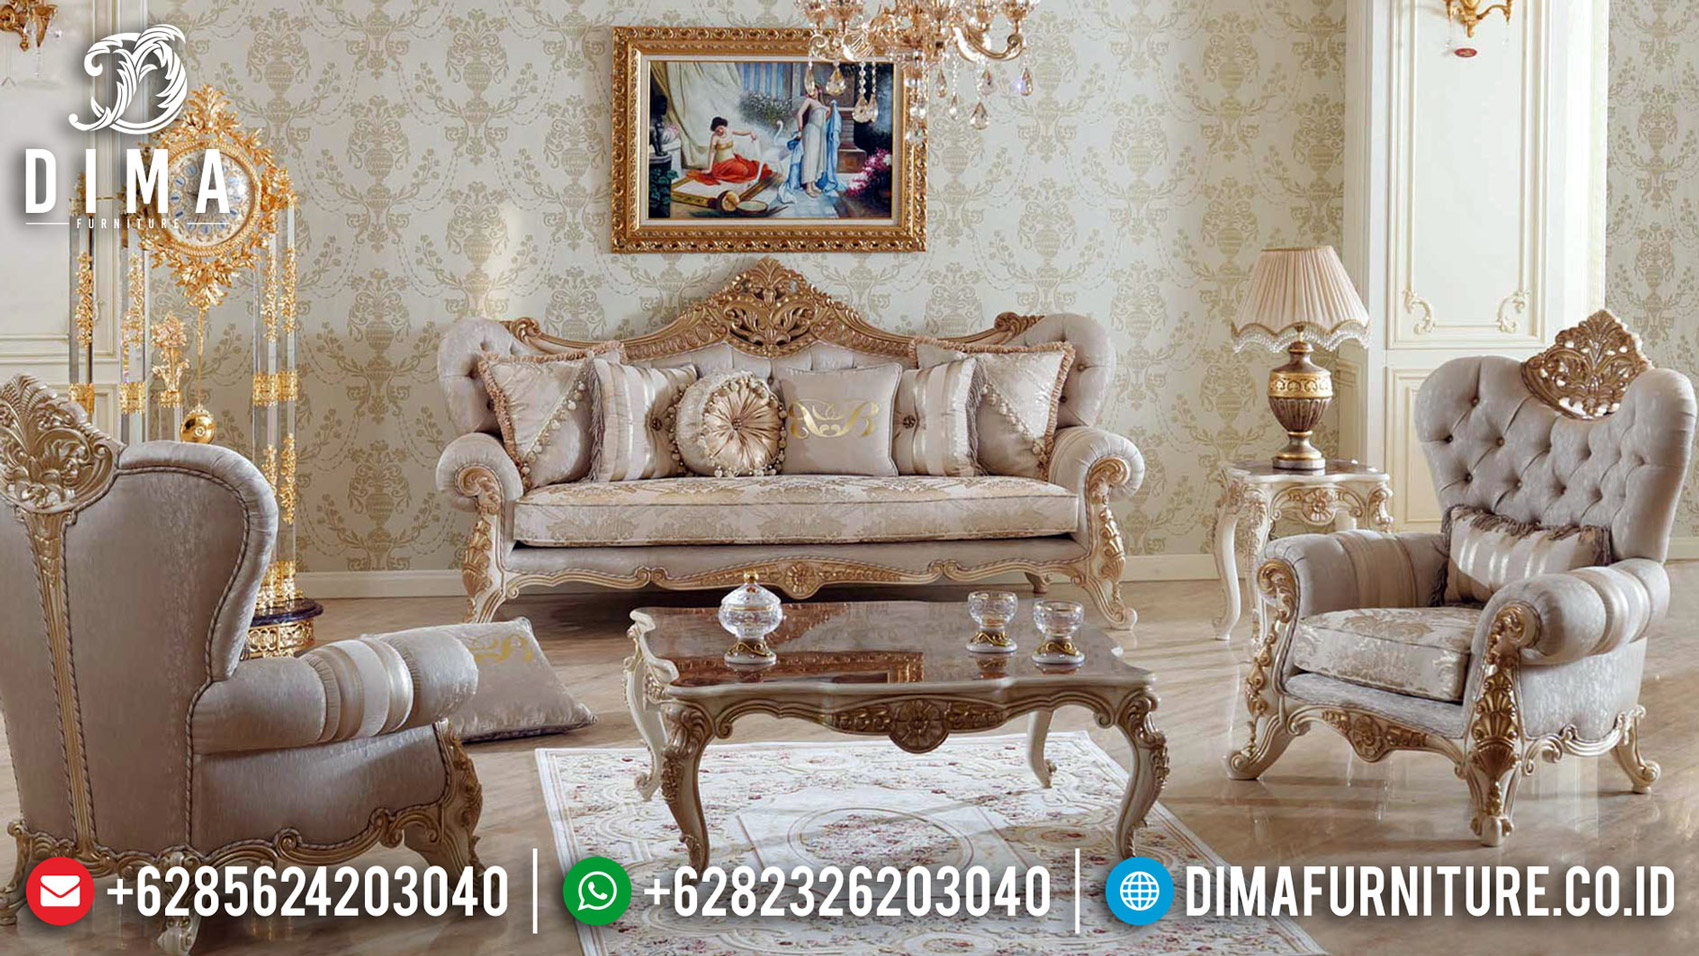 Furniture Jepara Elegant Sofa Tamu Mewah Mahkota Ukir Luxury Carving Jepara BT-0572